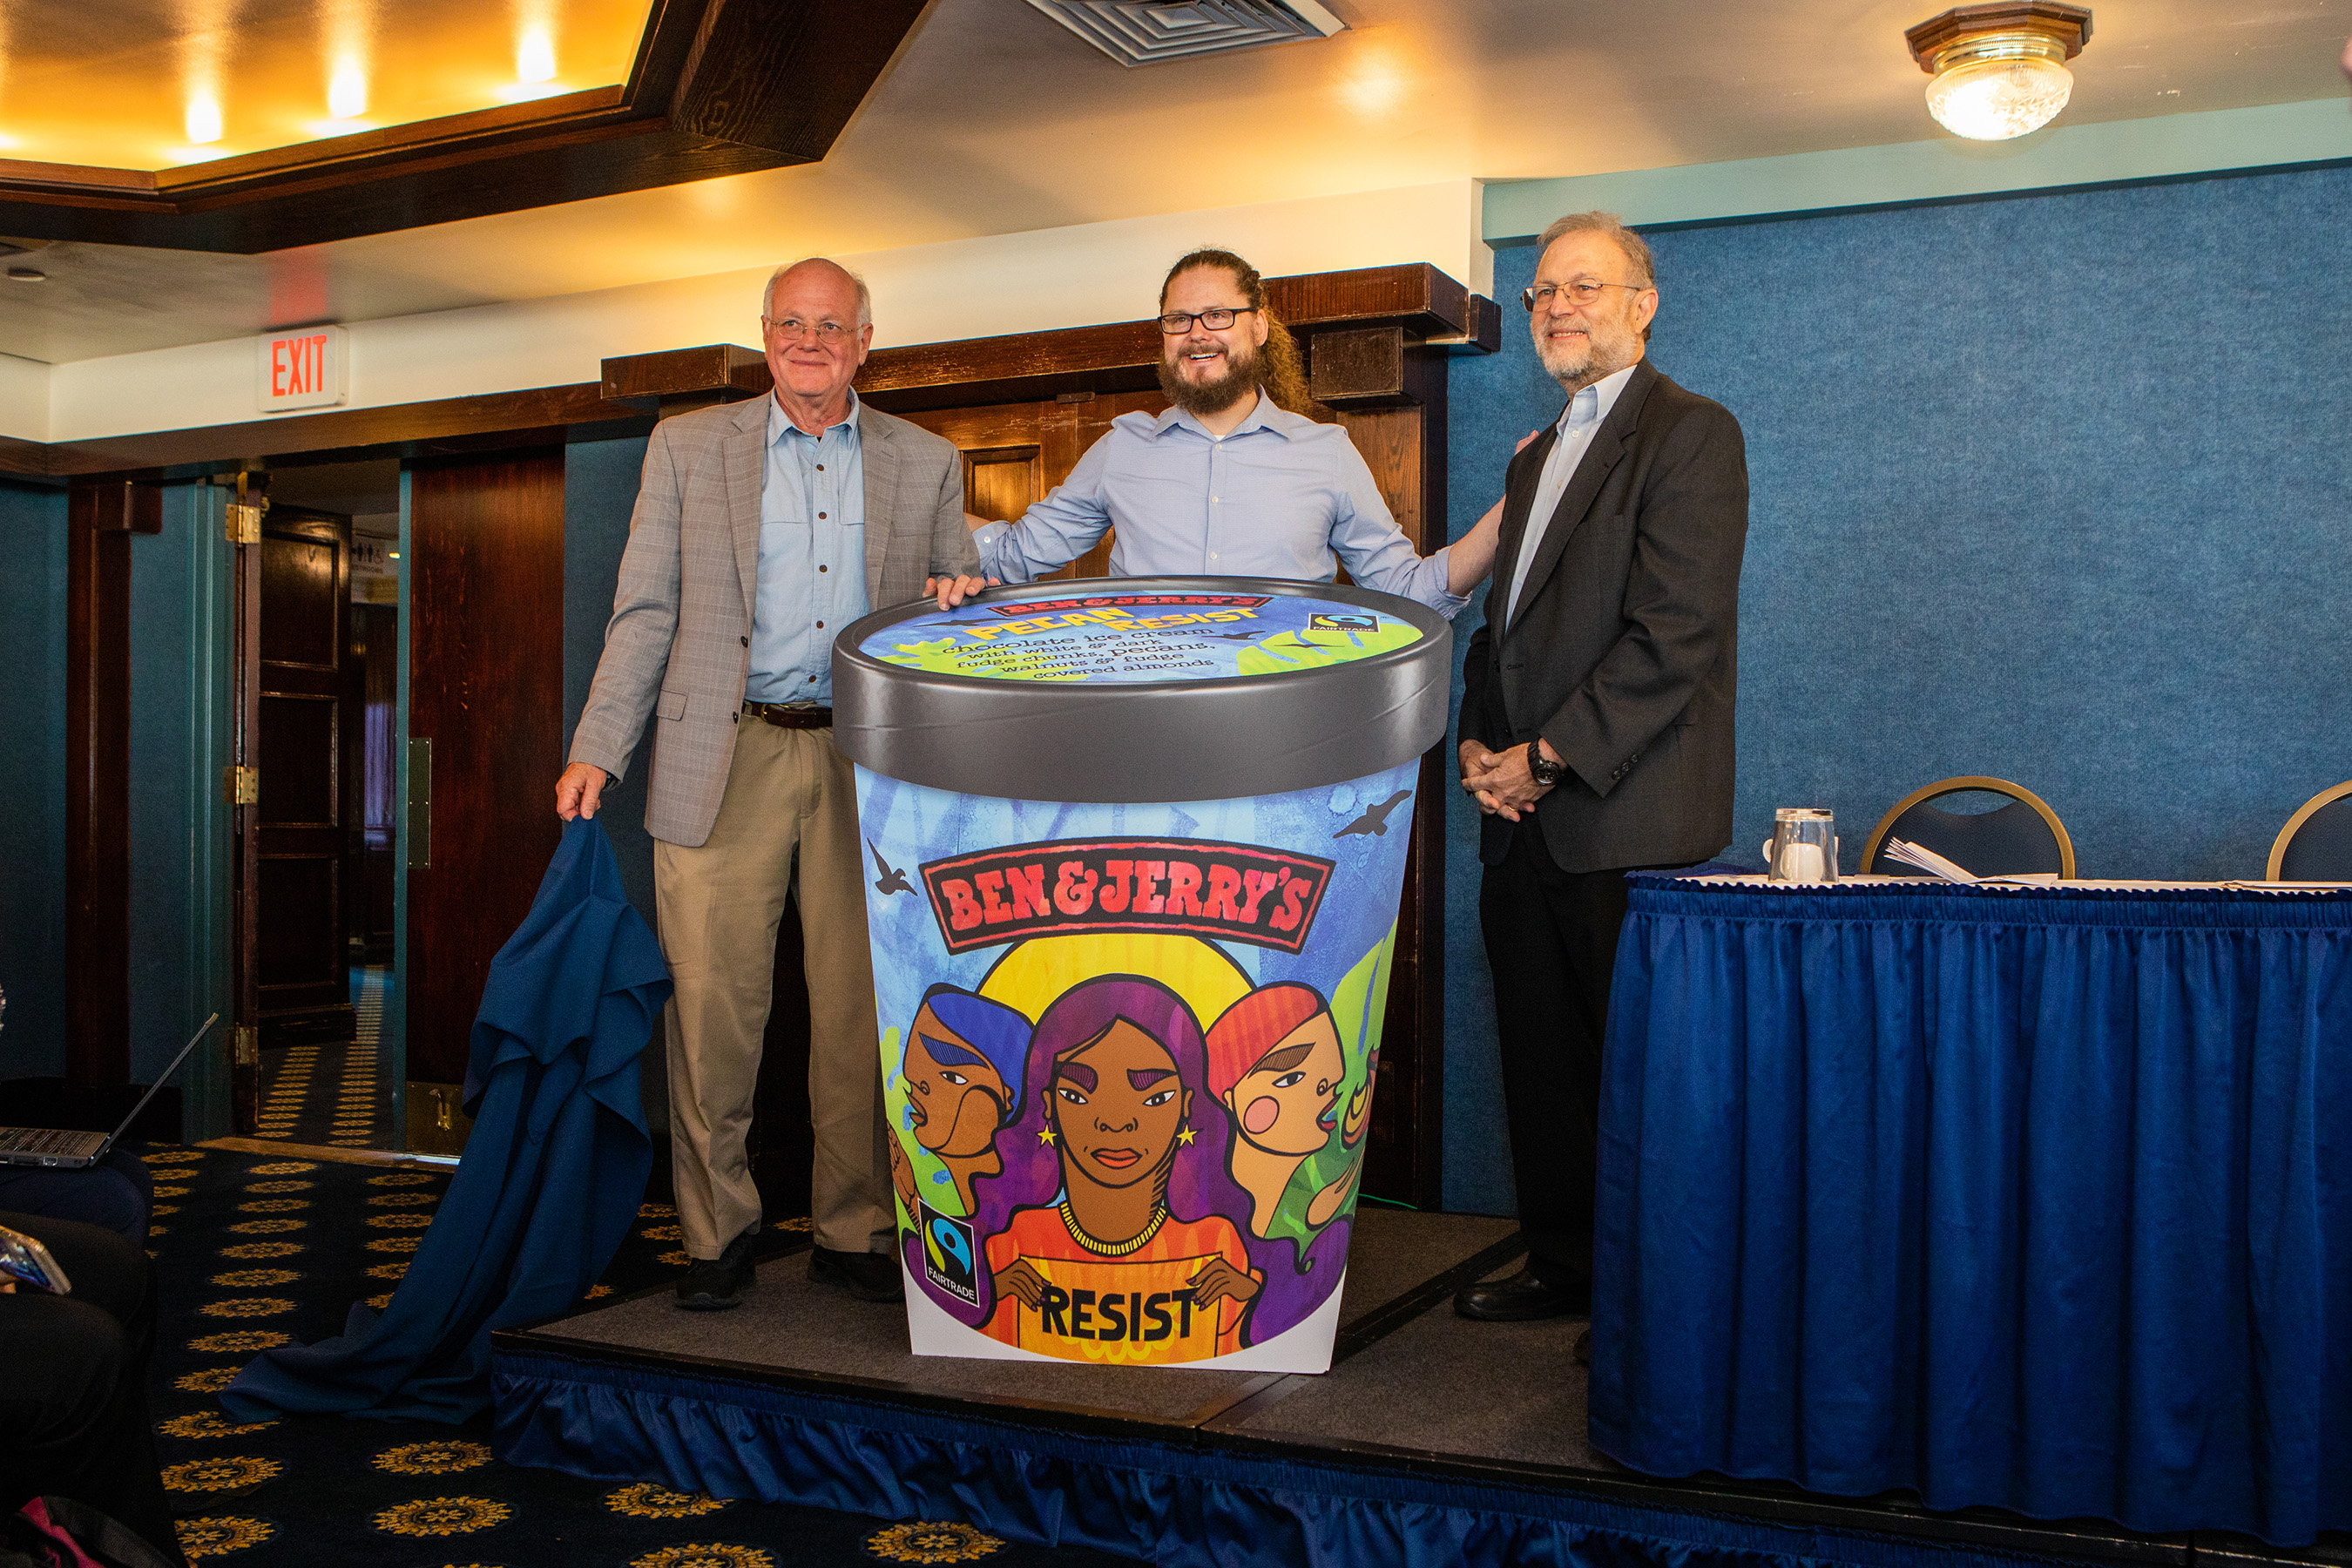 Ben & Jerry's Co-founders Ben Cohen (left) and Jerry Greenfield (right) join Ben & Jerry's CEO Matthew McCarthy (center) to unveil a new flavor, Pecan Resist. The company is resisting the regressive policies of the current administration and supporting four activist groups working for a more just nation.